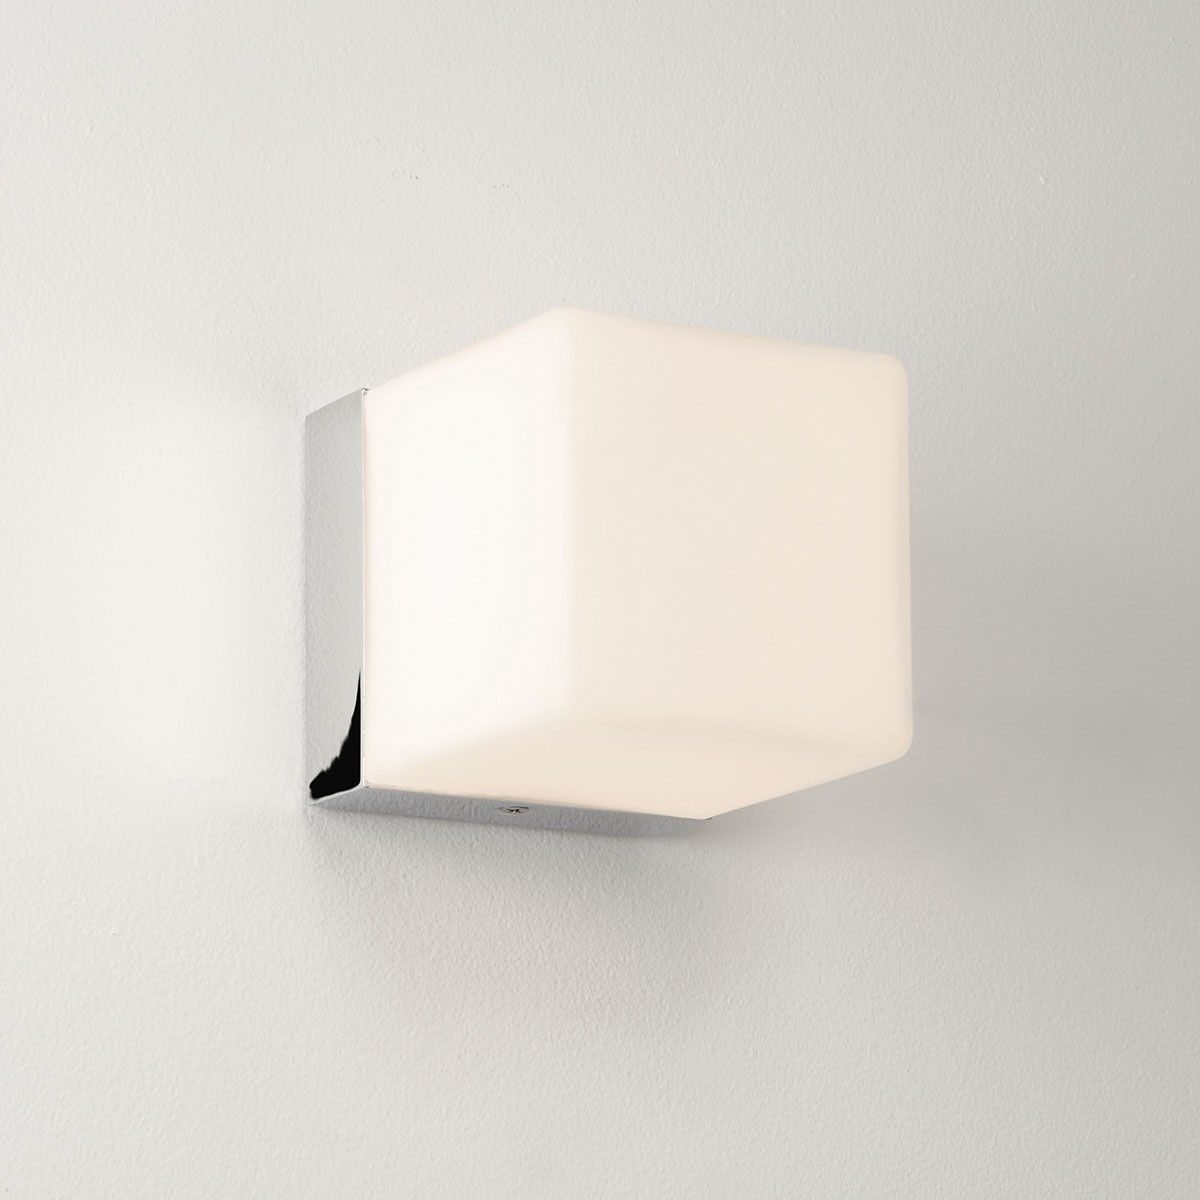 Astro Cube Polished Chrome and White Glass Bathroom Wall Light at UK Electrical Supplies.